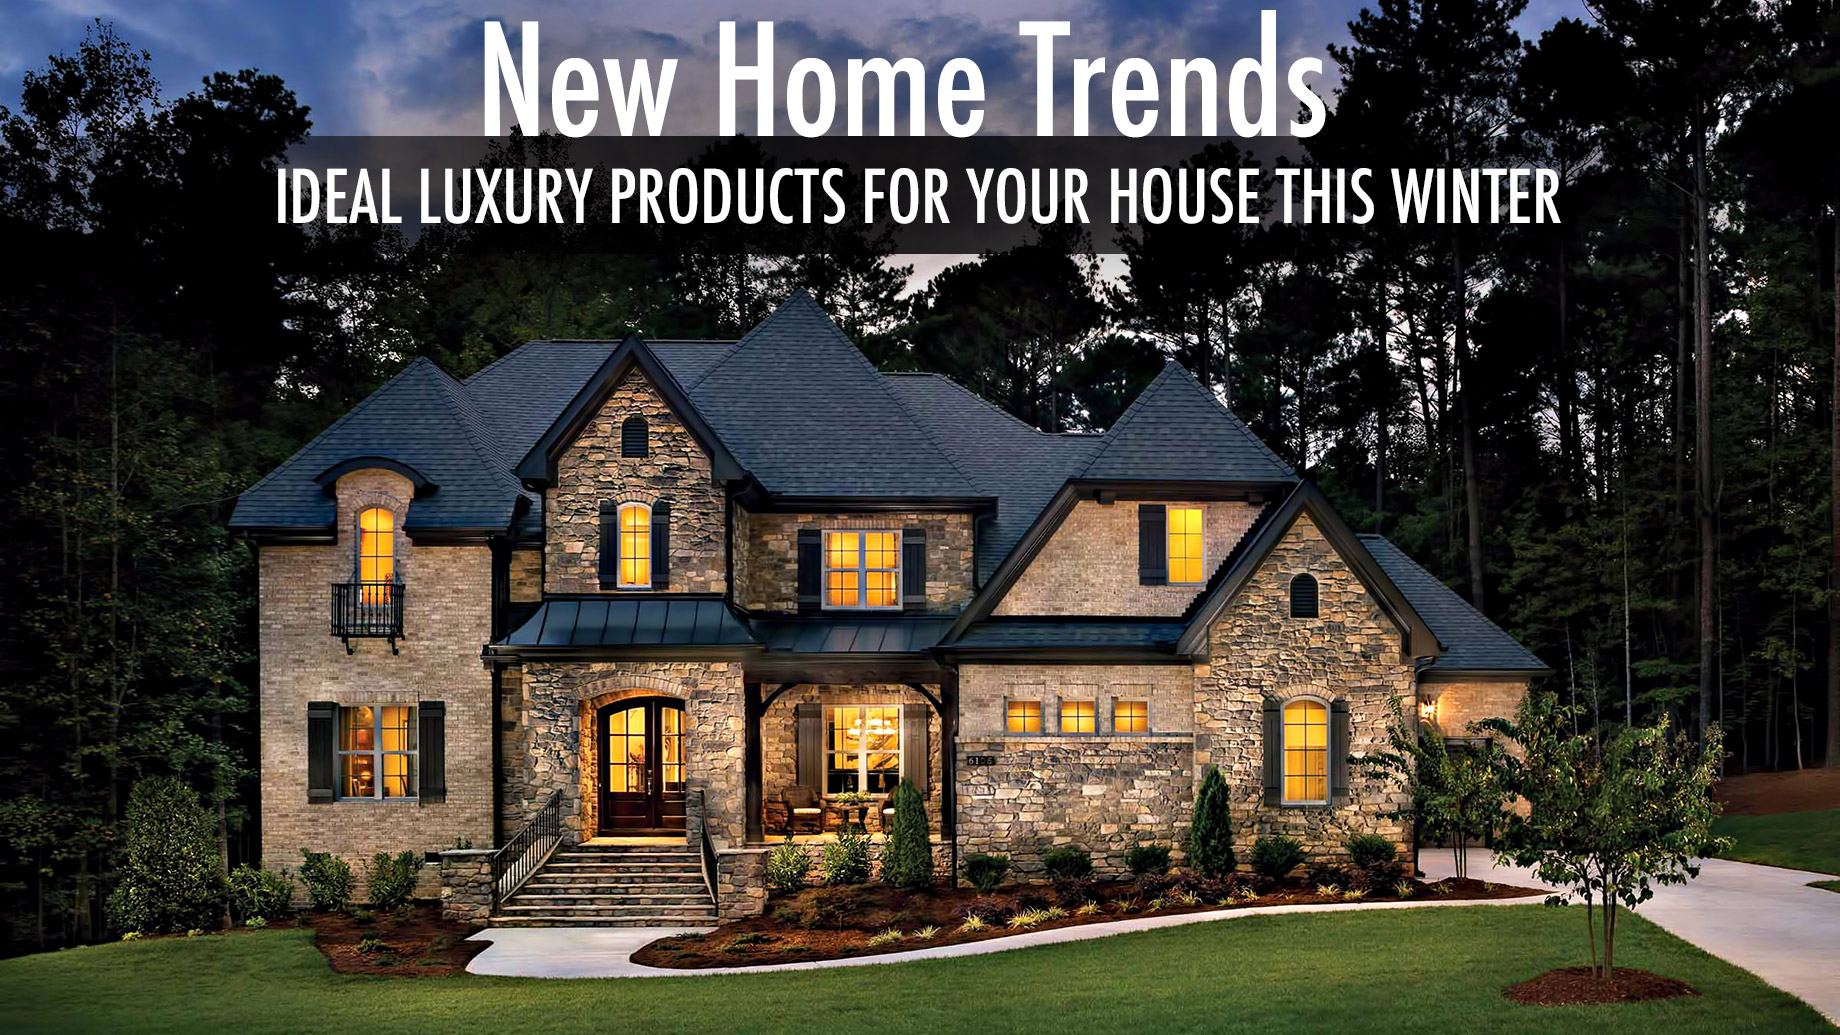 New Home Trends - Ideal Luxury Products For Your House This Winter